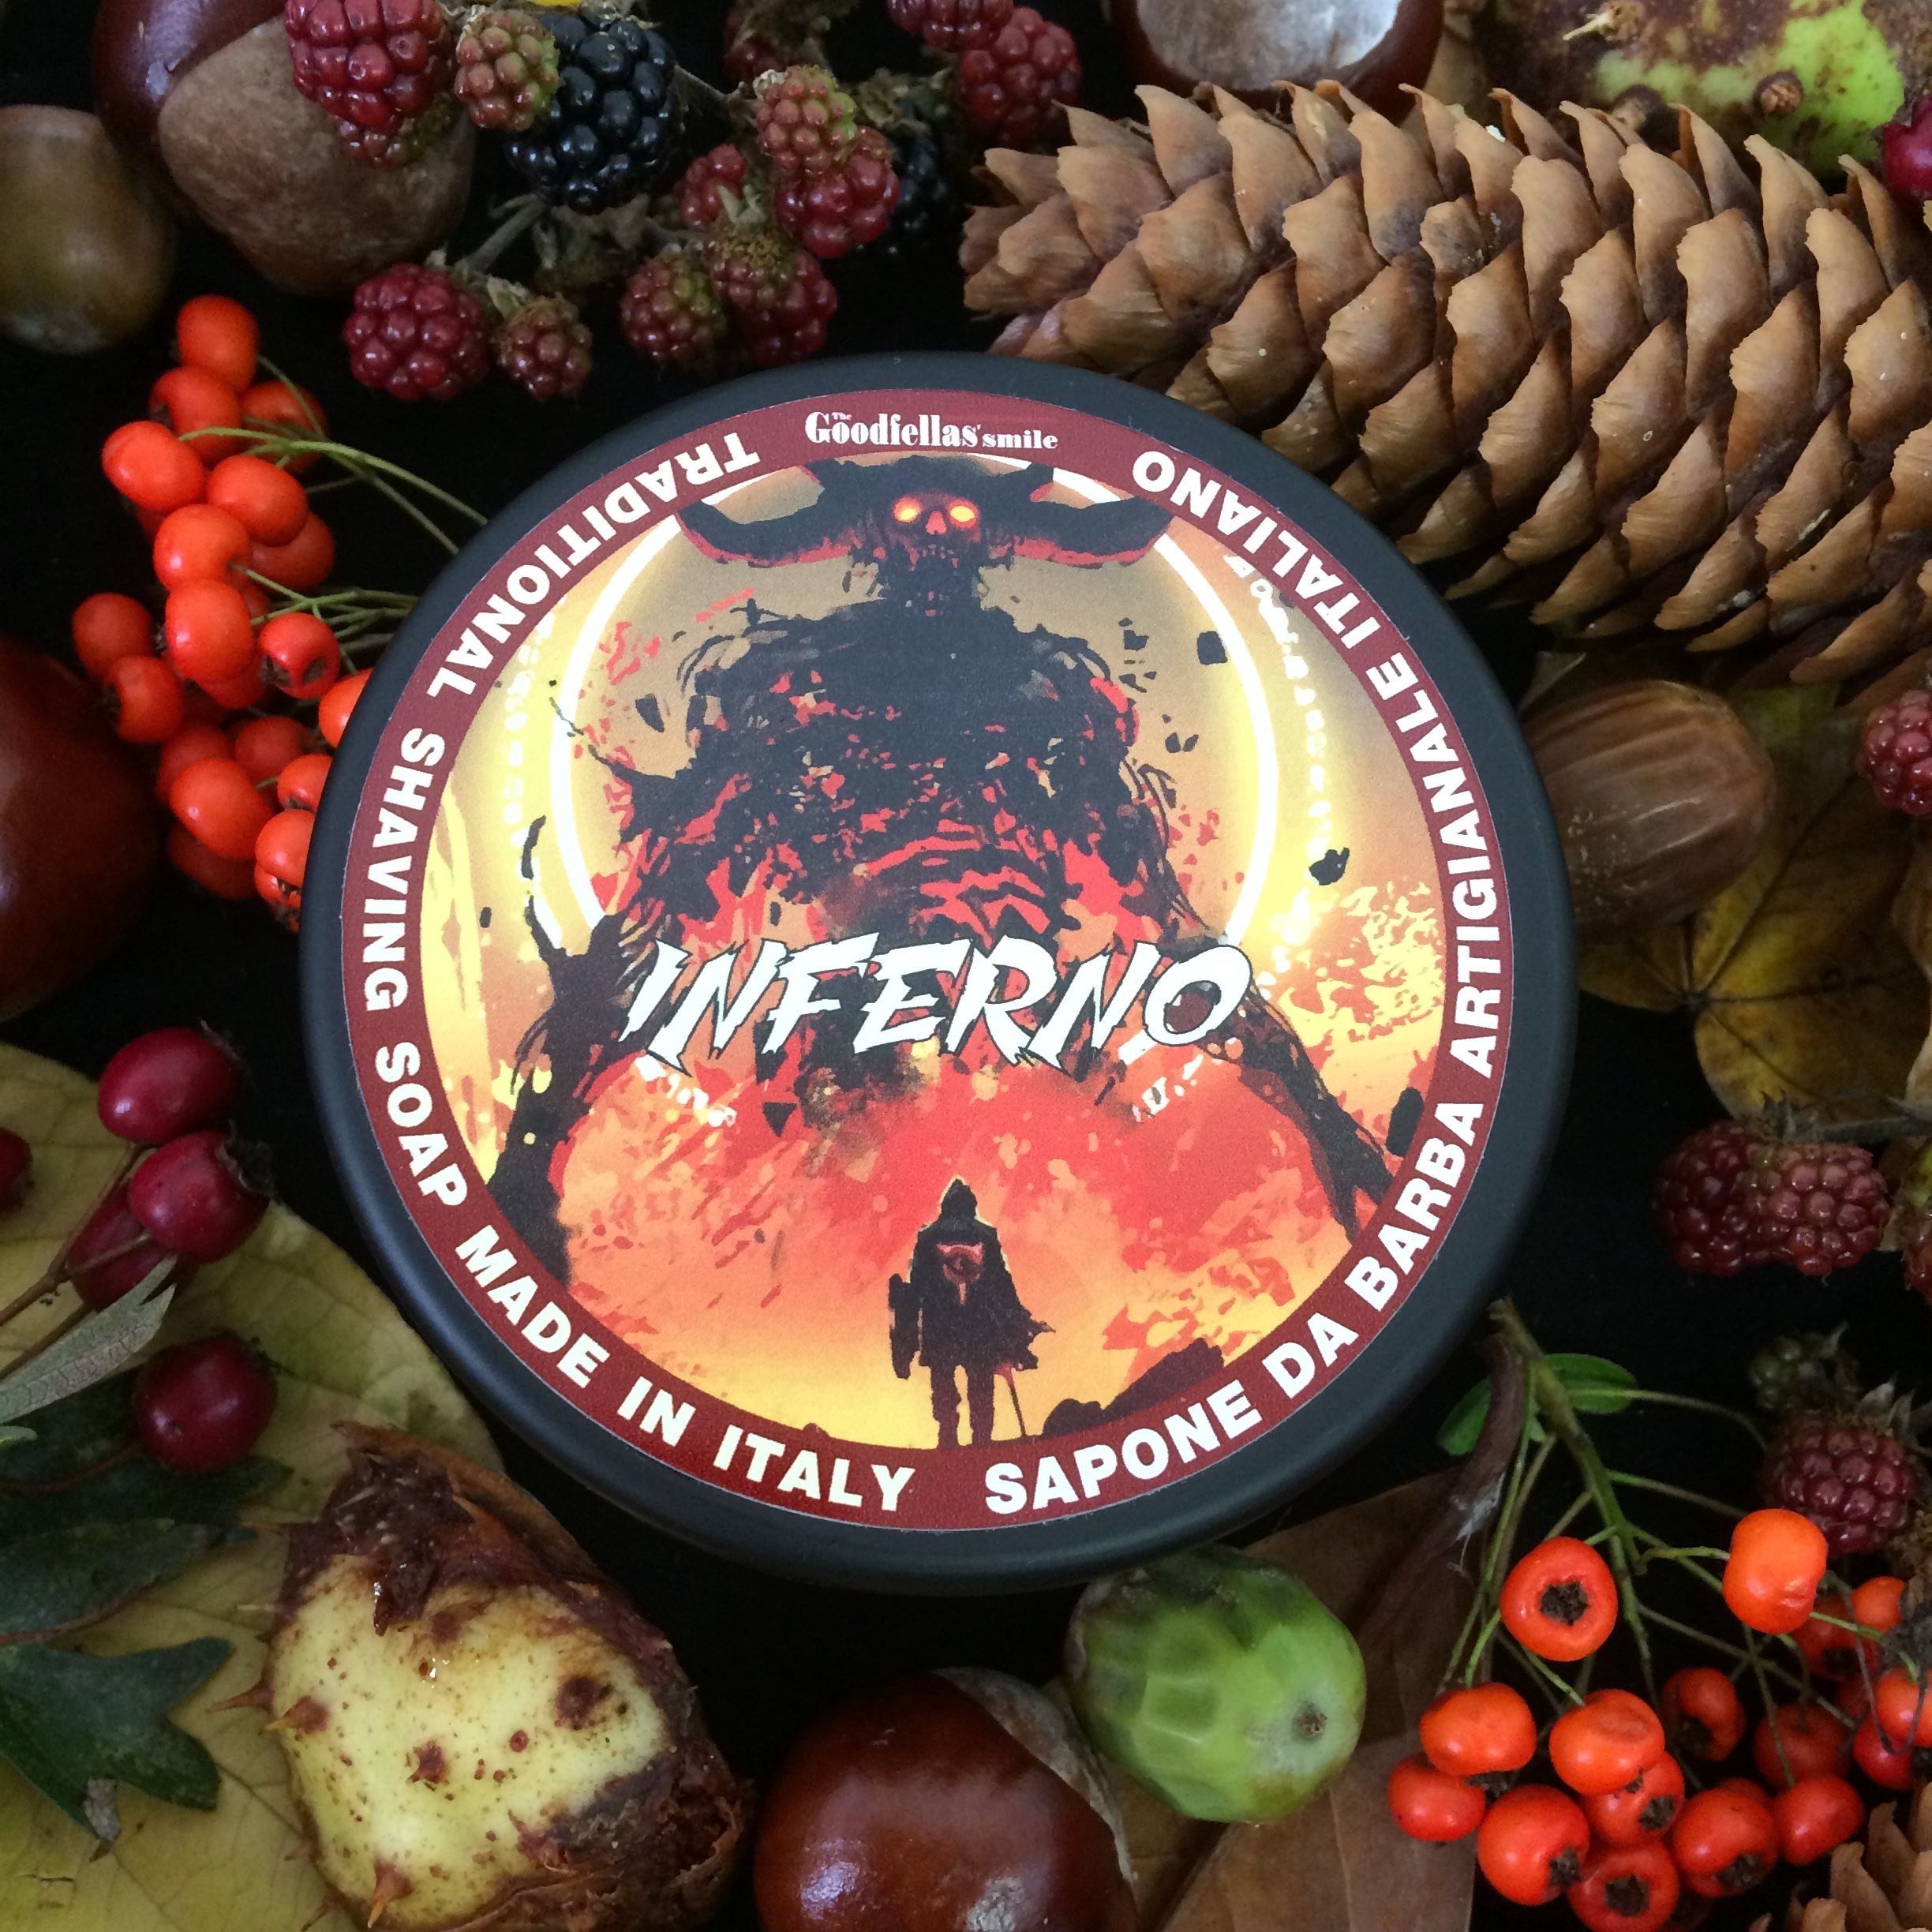 The Goodfellas Smile Inferno Shaving Soap | Agent Shave